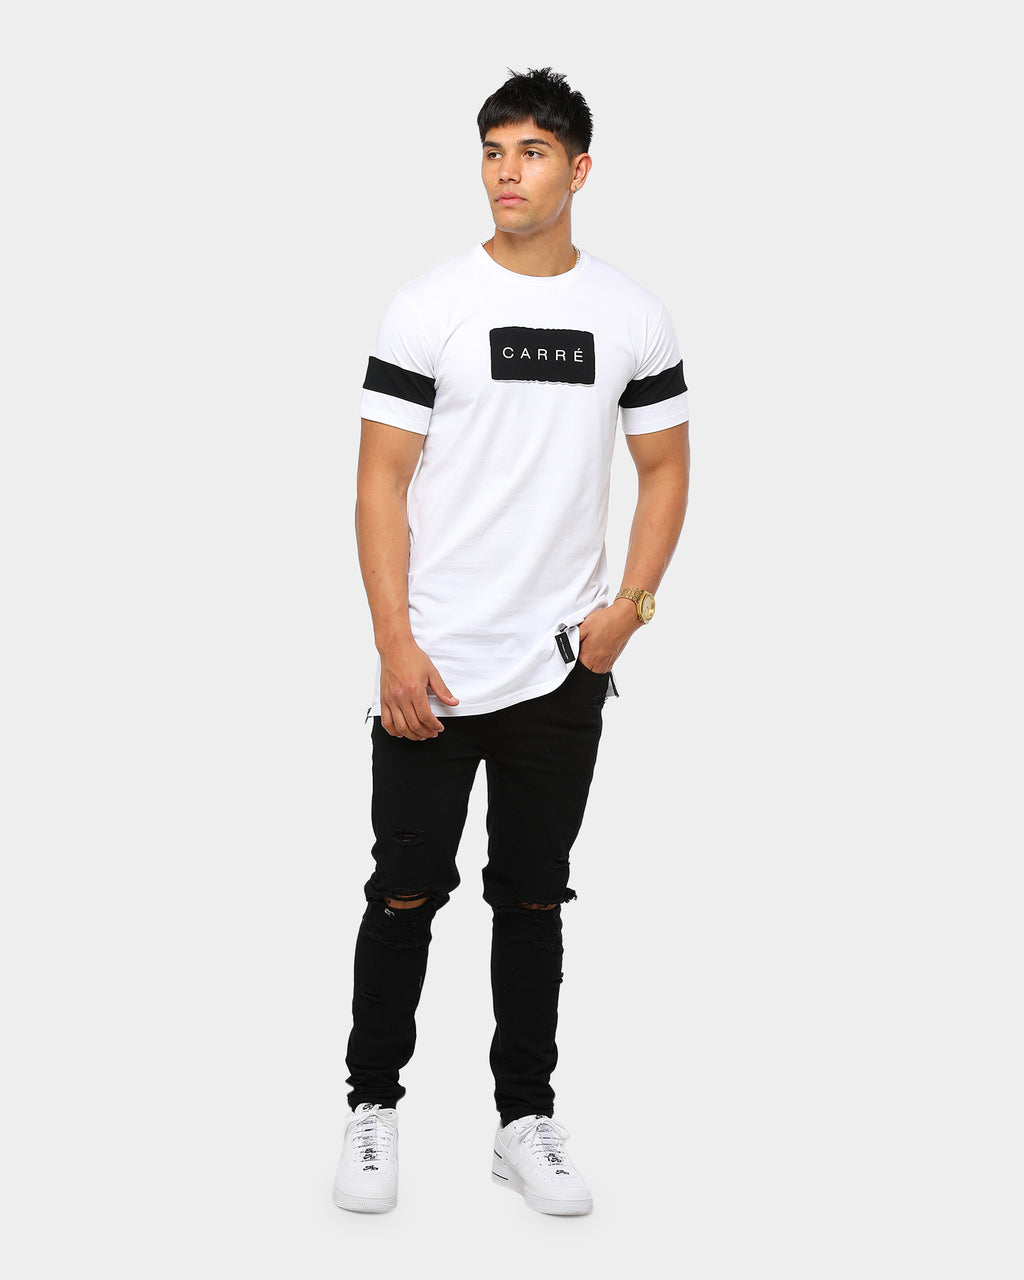 Carré Men's Fragment SS Tee White/Black